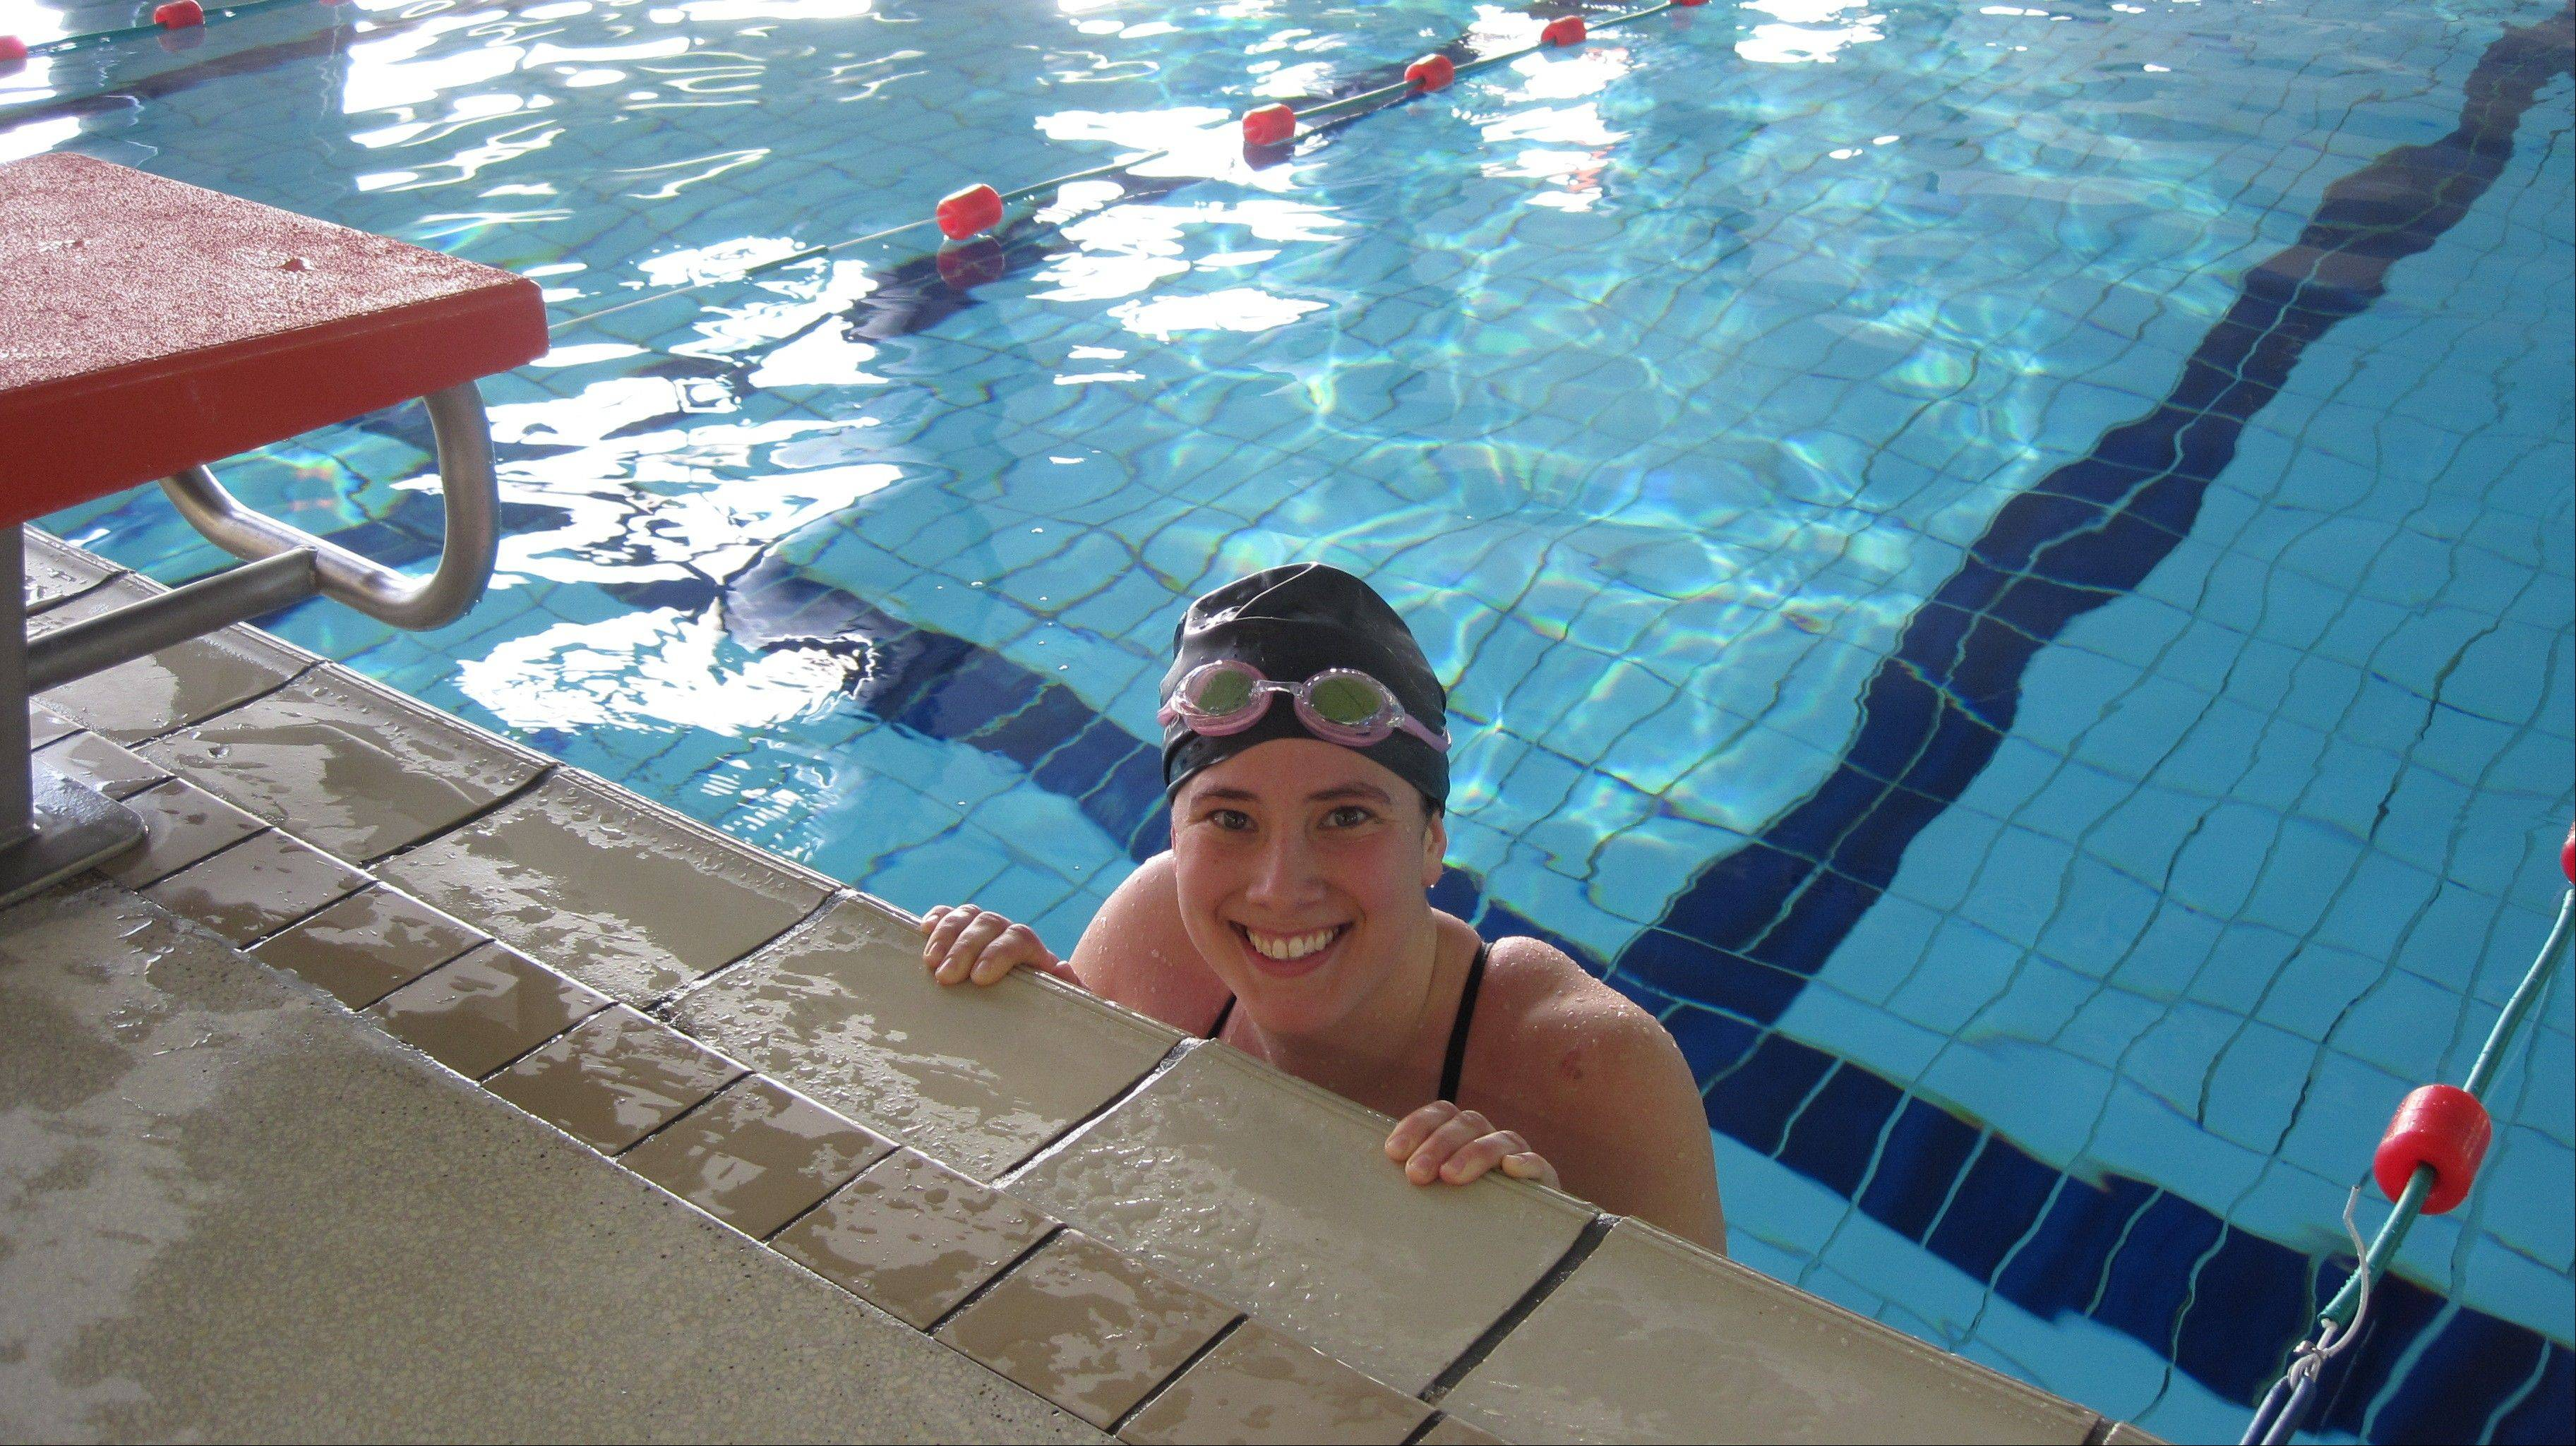 Wheaton native Marian Cardwell is training to swim the English Channel this month as part of a fundraising effort to find a functional cure for diabetes.